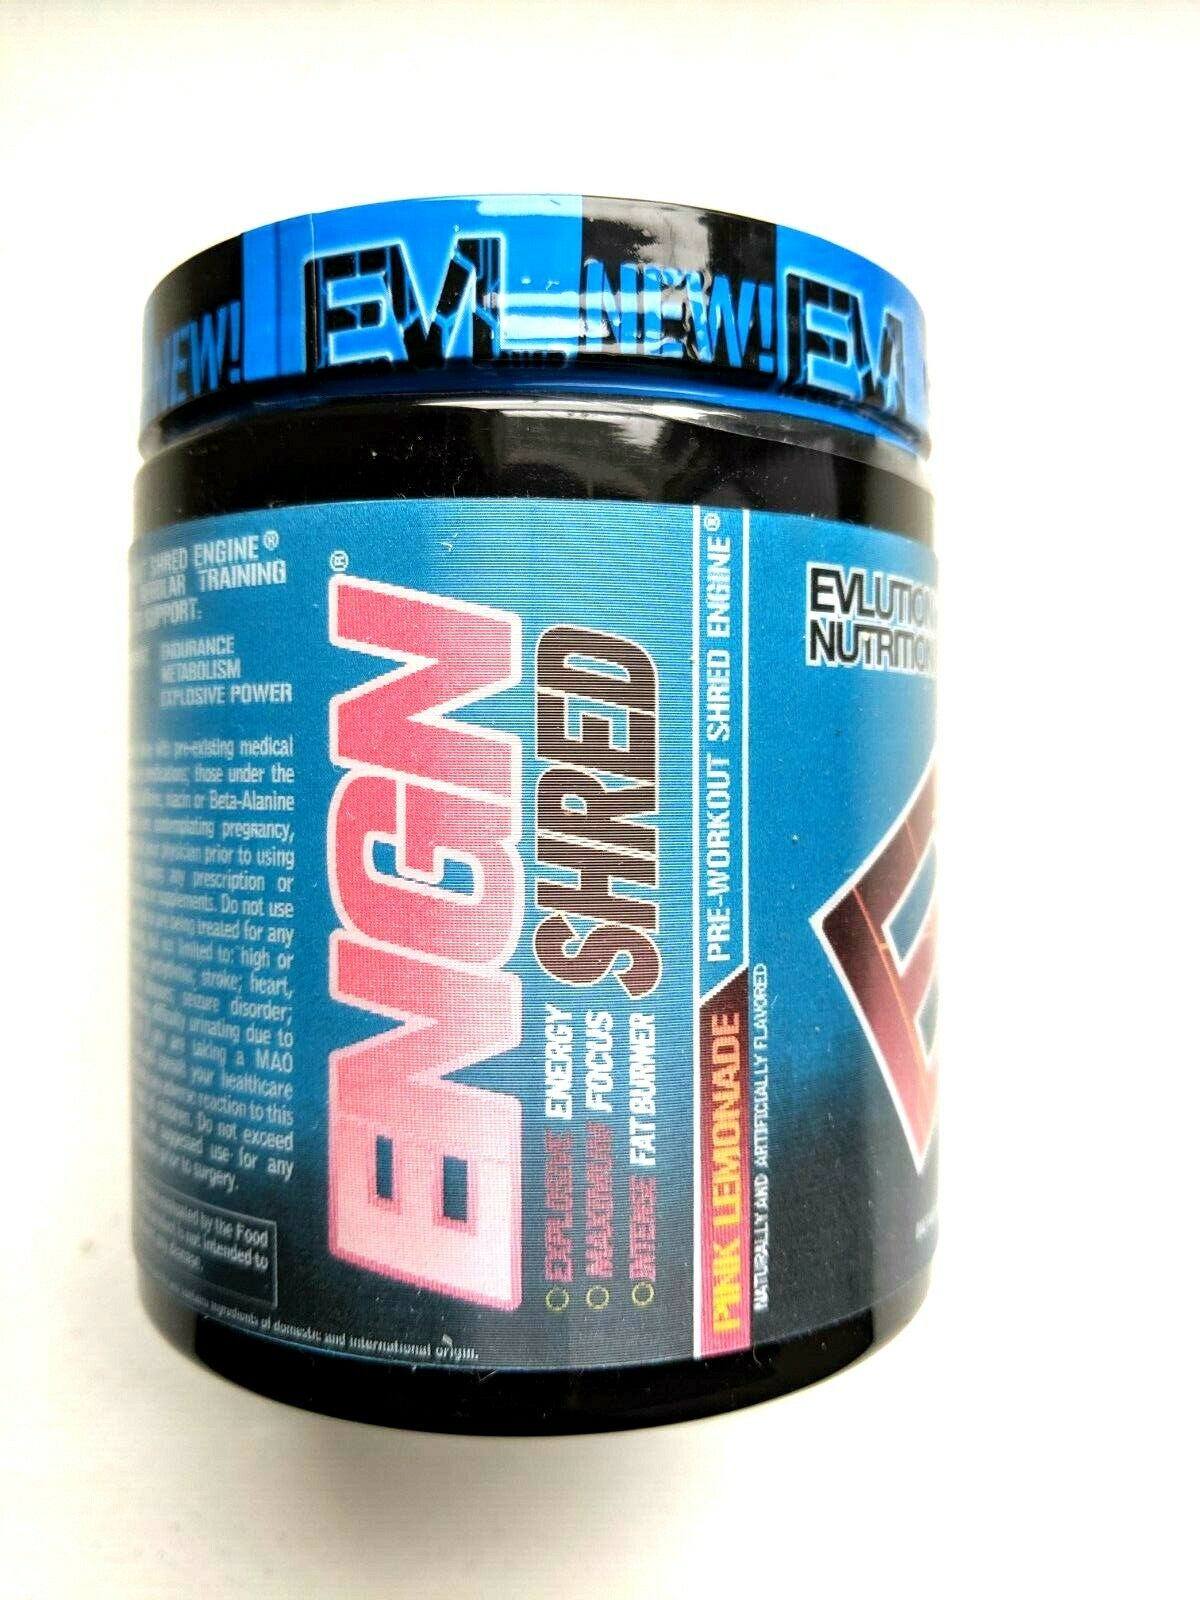 Evlution Nutrition ENGN SHRED Pre workout Intense Fat burner